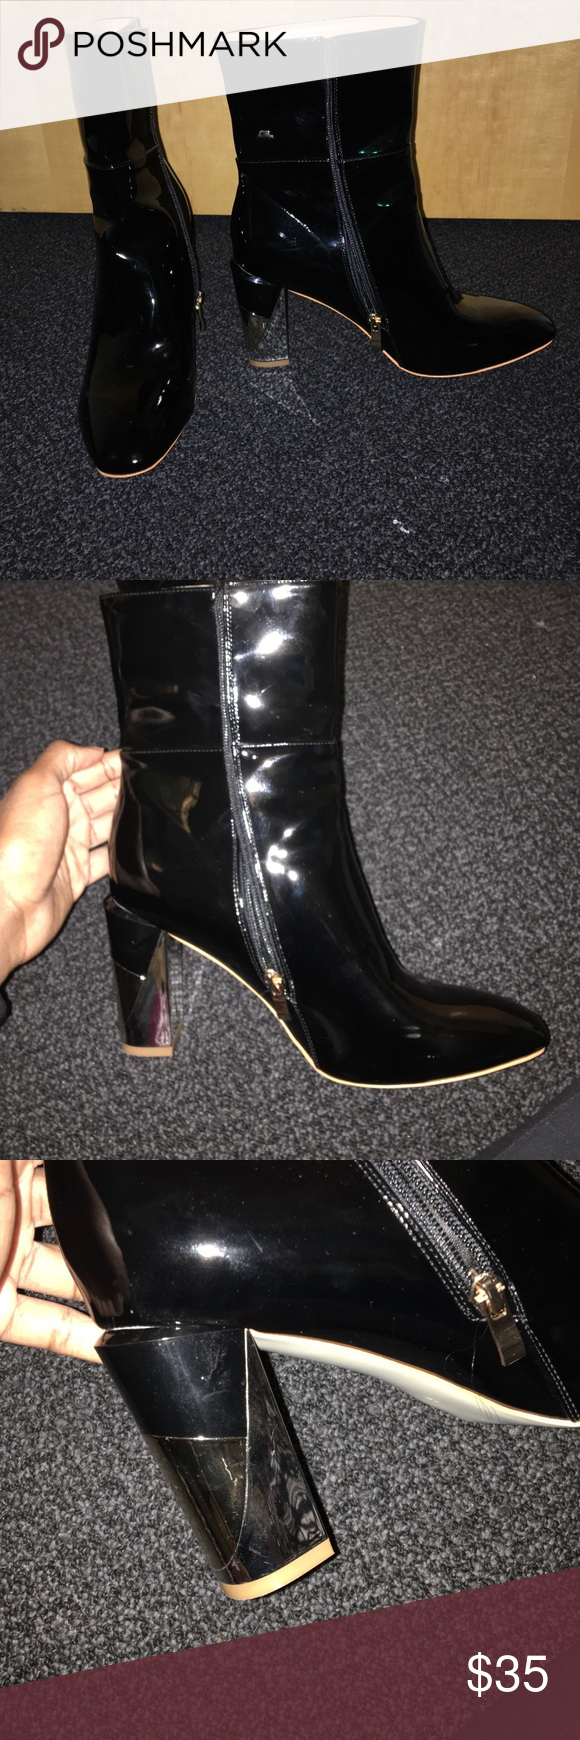 Ego Official Faux Patent Leather Boots Black patent leather! Size 10 US/ 8 UK but fits like a 9. They run small! Heel is black, silver and gold. Heel height I would say is about 4 inches. Easy to walk in! Never worn out! Ego Official Shoes Heeled Boots